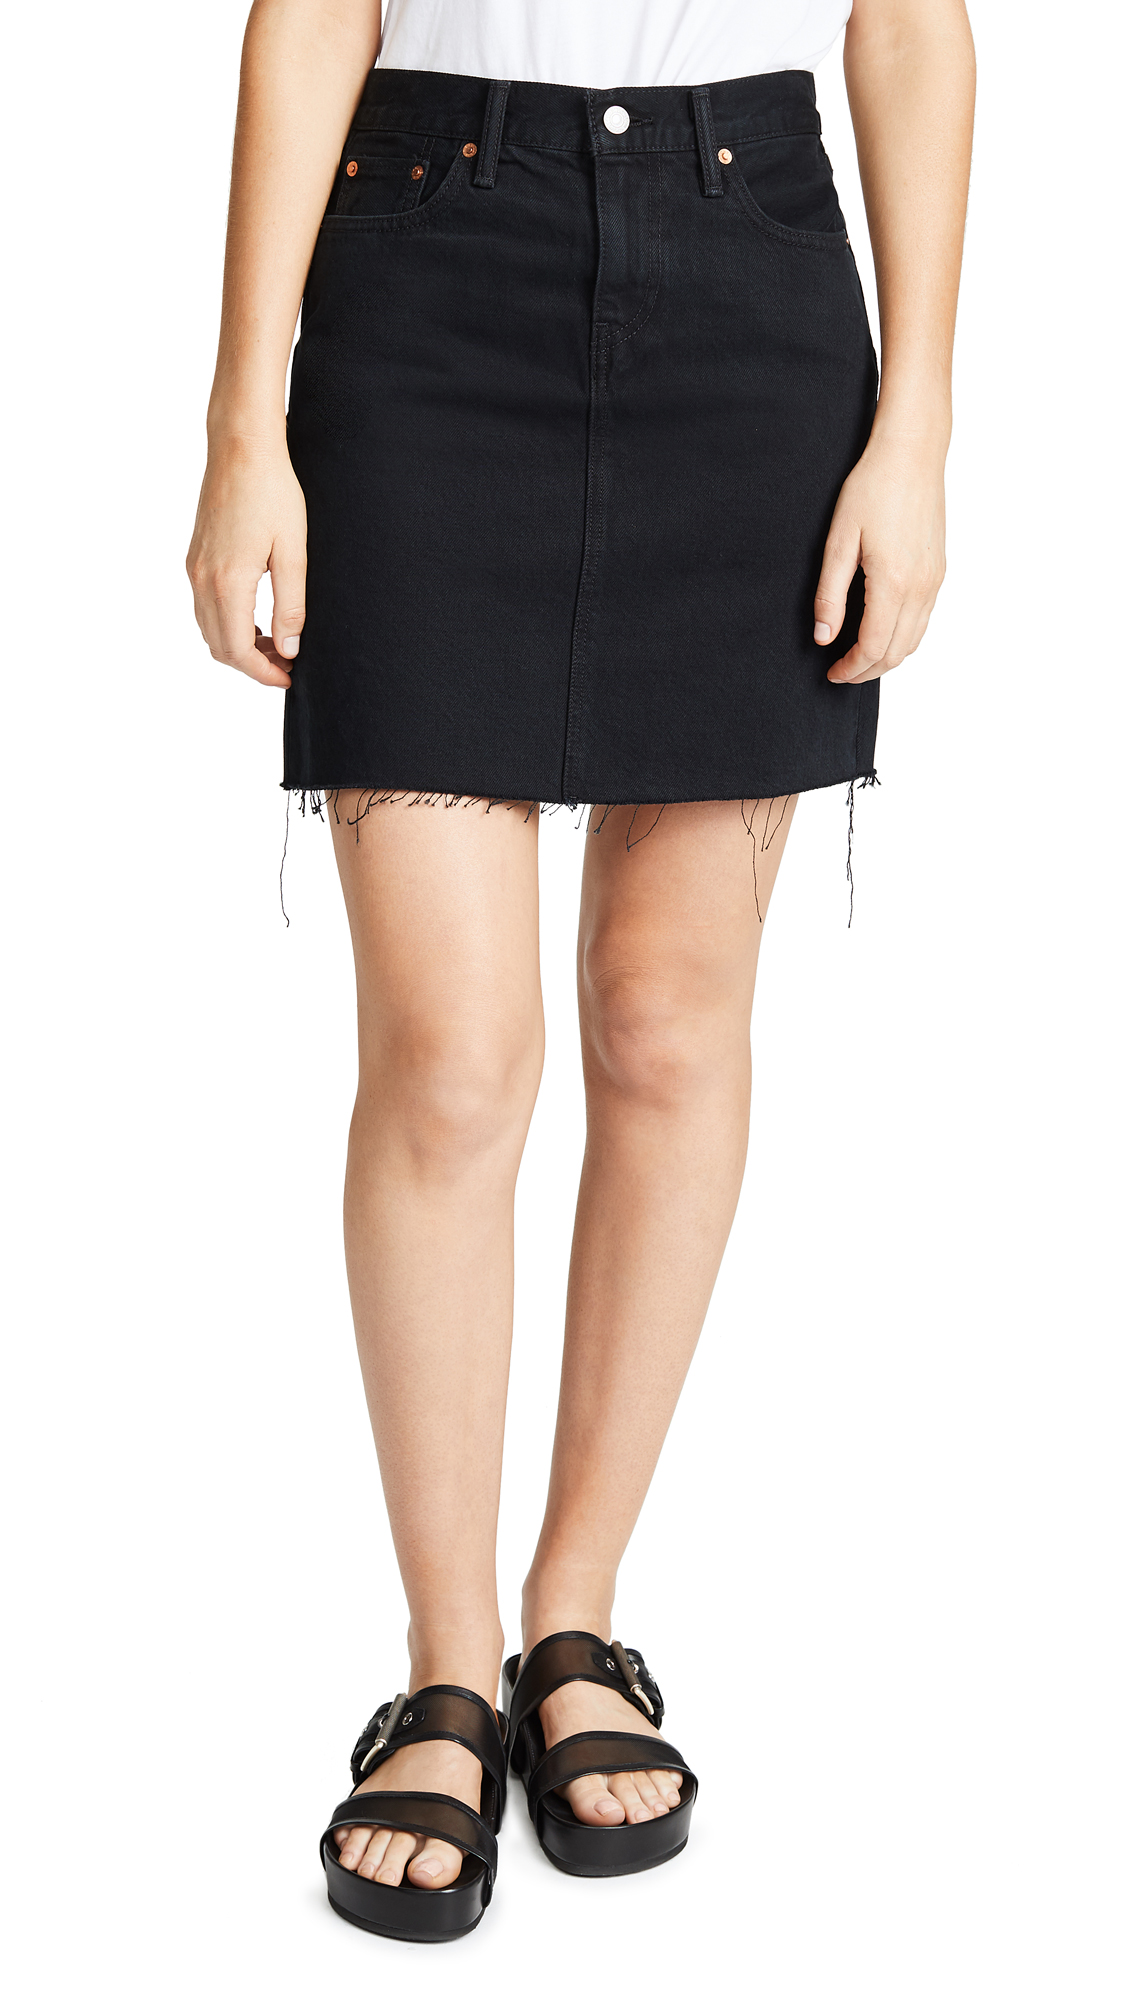 Levi's Everyday Skirt In Charcoal Black